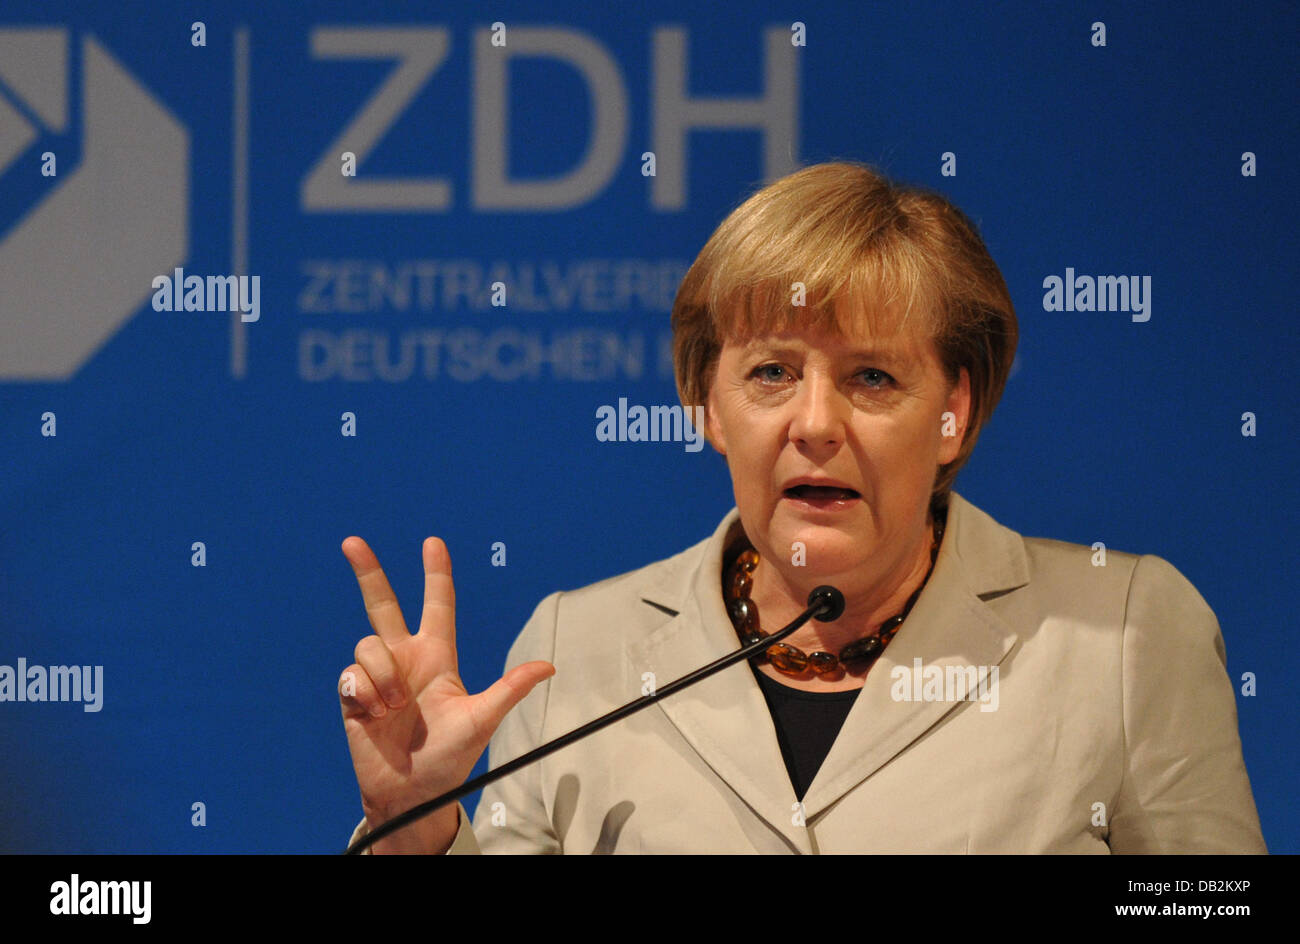 German Chancellor Angela Merkel speaks during the forum of the German Central Crafts Union in Berlin, Germany, 16 - Stock Image